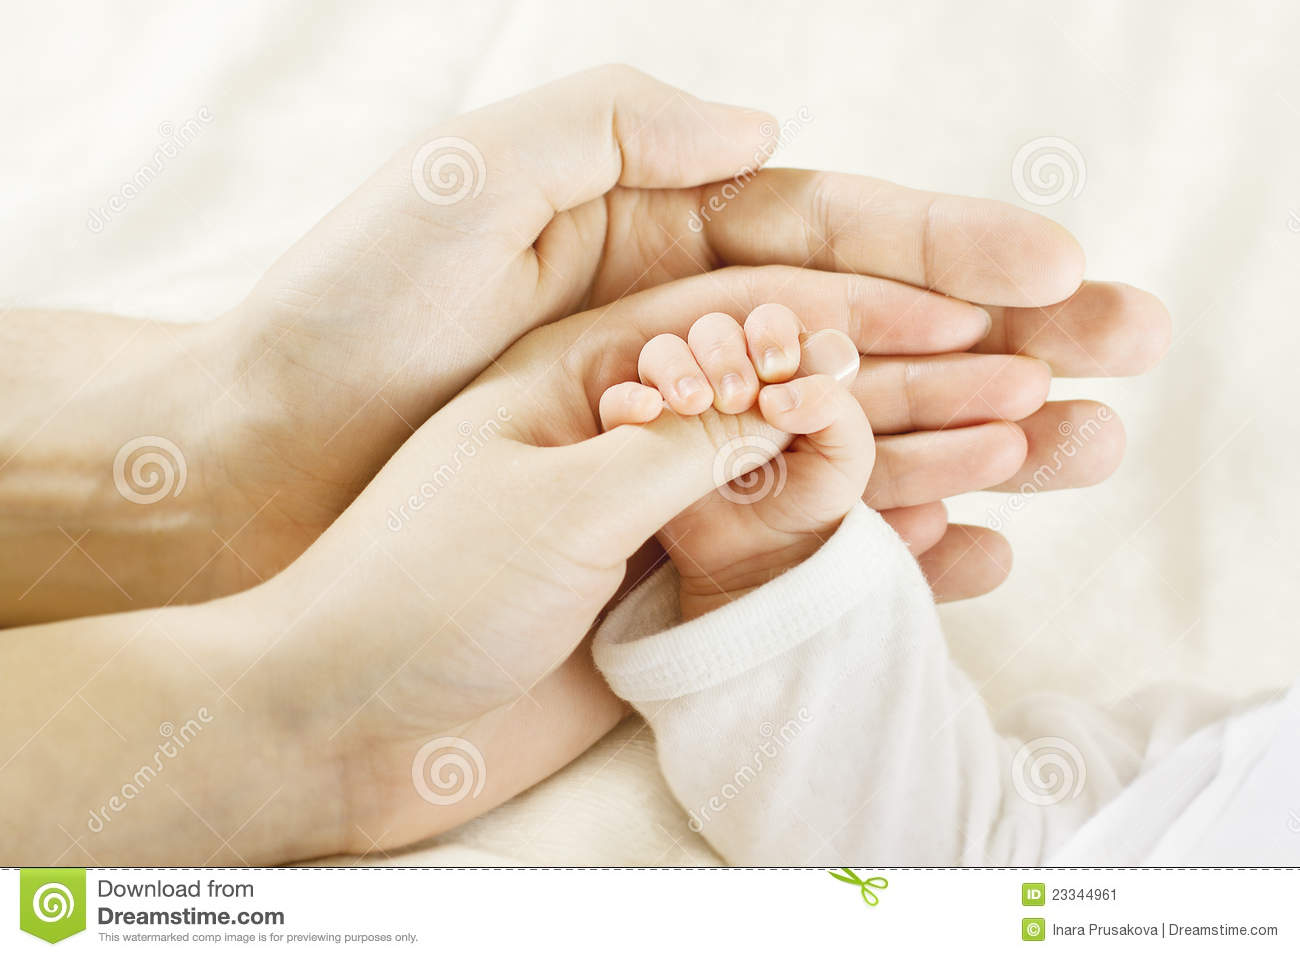 ... Mother Holding Newborn Kid. Child Hand Stock Image - Image: 23344961